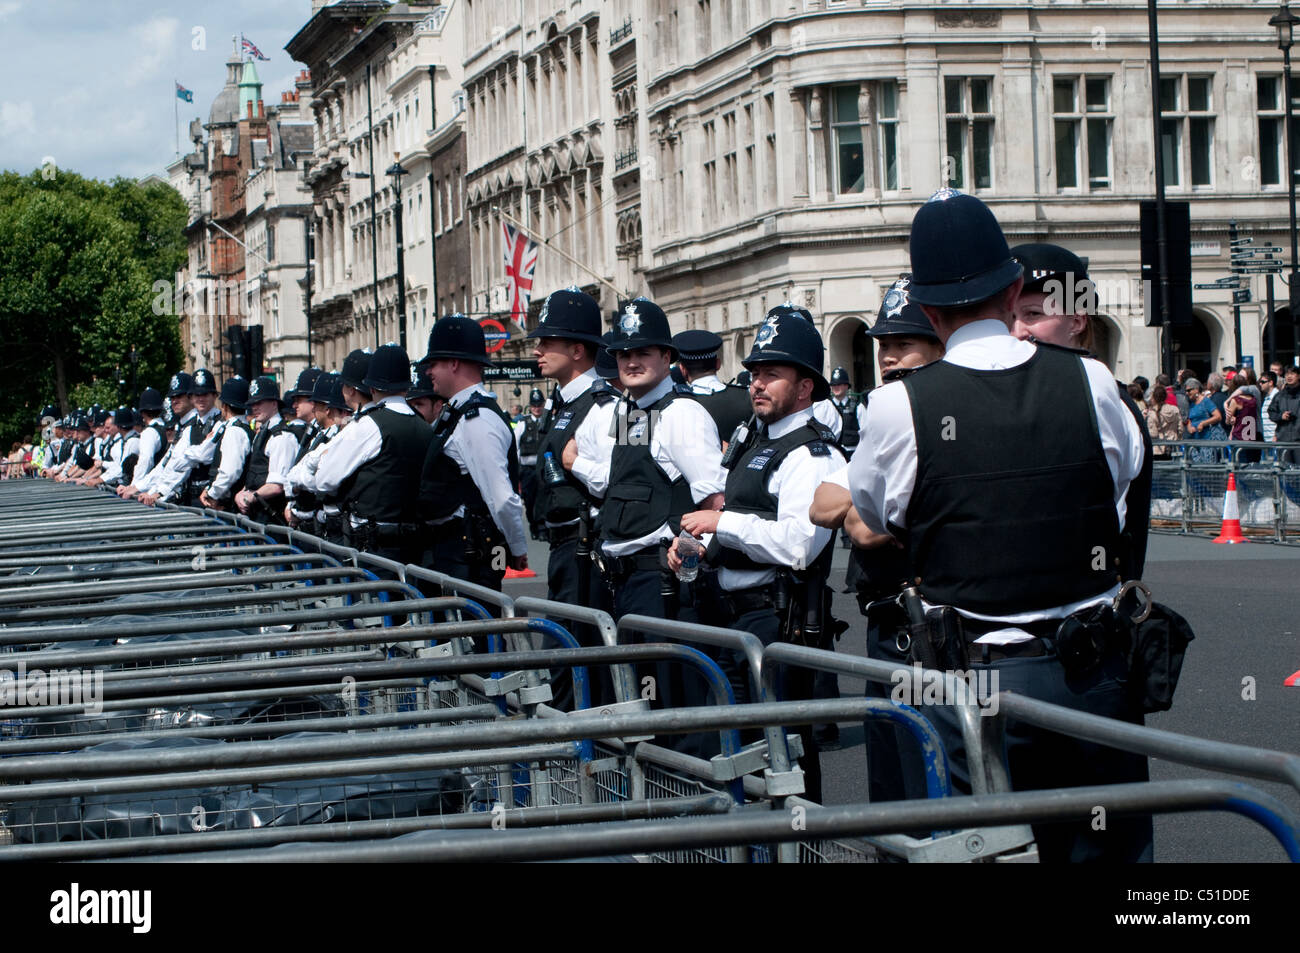 Police line during Public sector pensions strike, London, 30/06/2011, UK - Stock Image